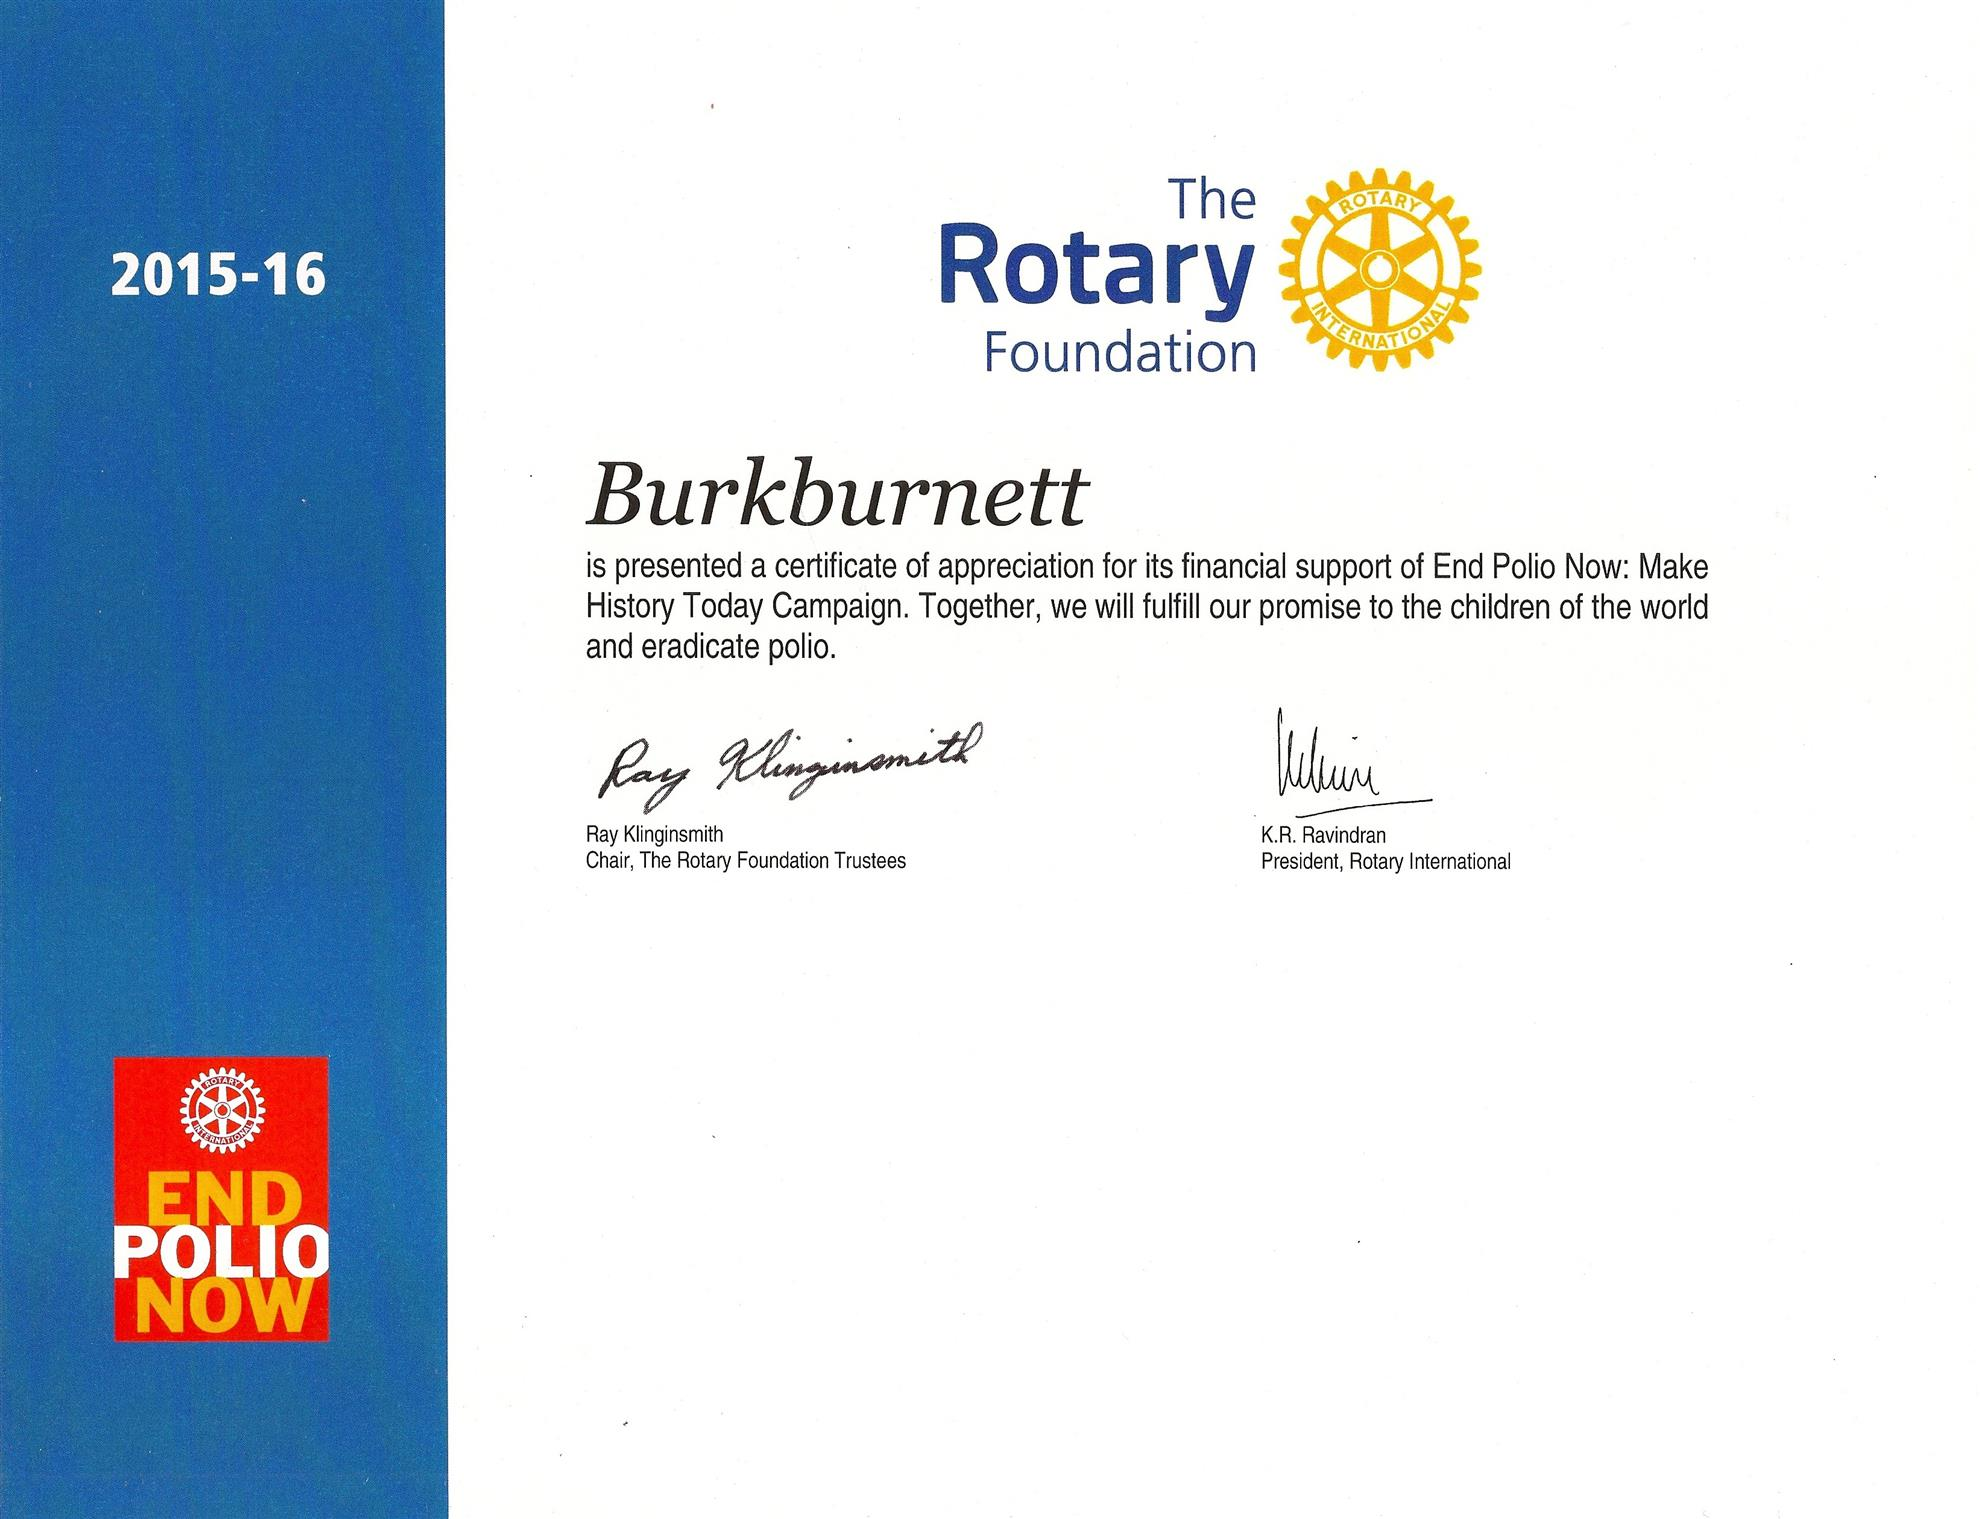 Rotary certificate of appreciation template images templates rotary certificate of appreciation template gallery templates rotary certificate of appreciation template choice image rotary certificate alramifo Image collections